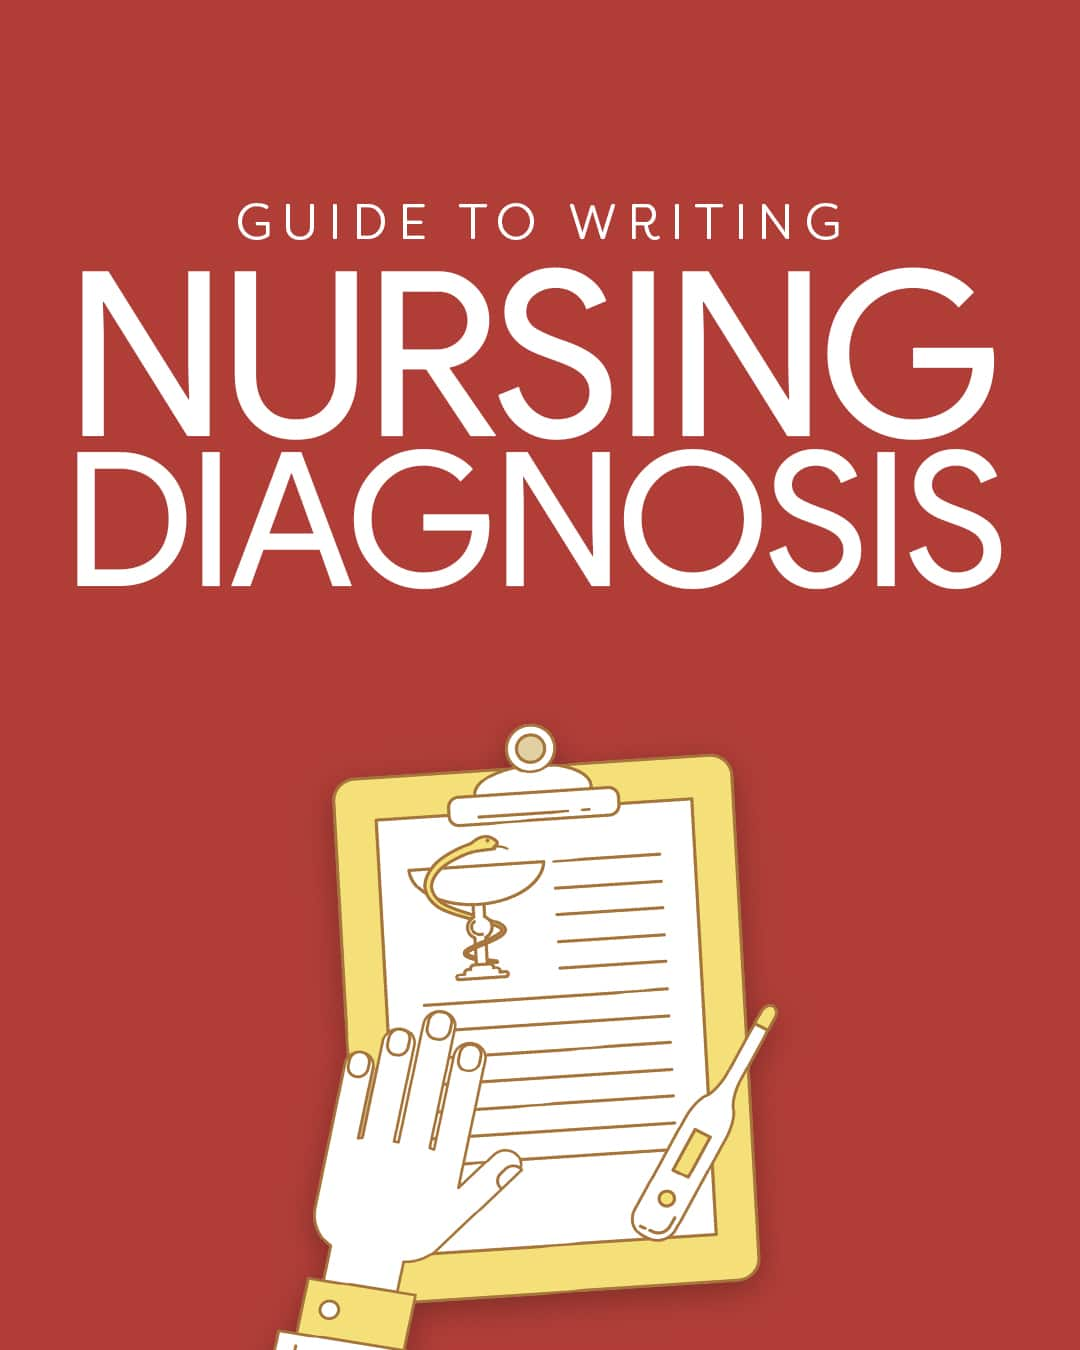 What is aNursing Diagnosis? Guide on How to Write Nursing Diagnosis